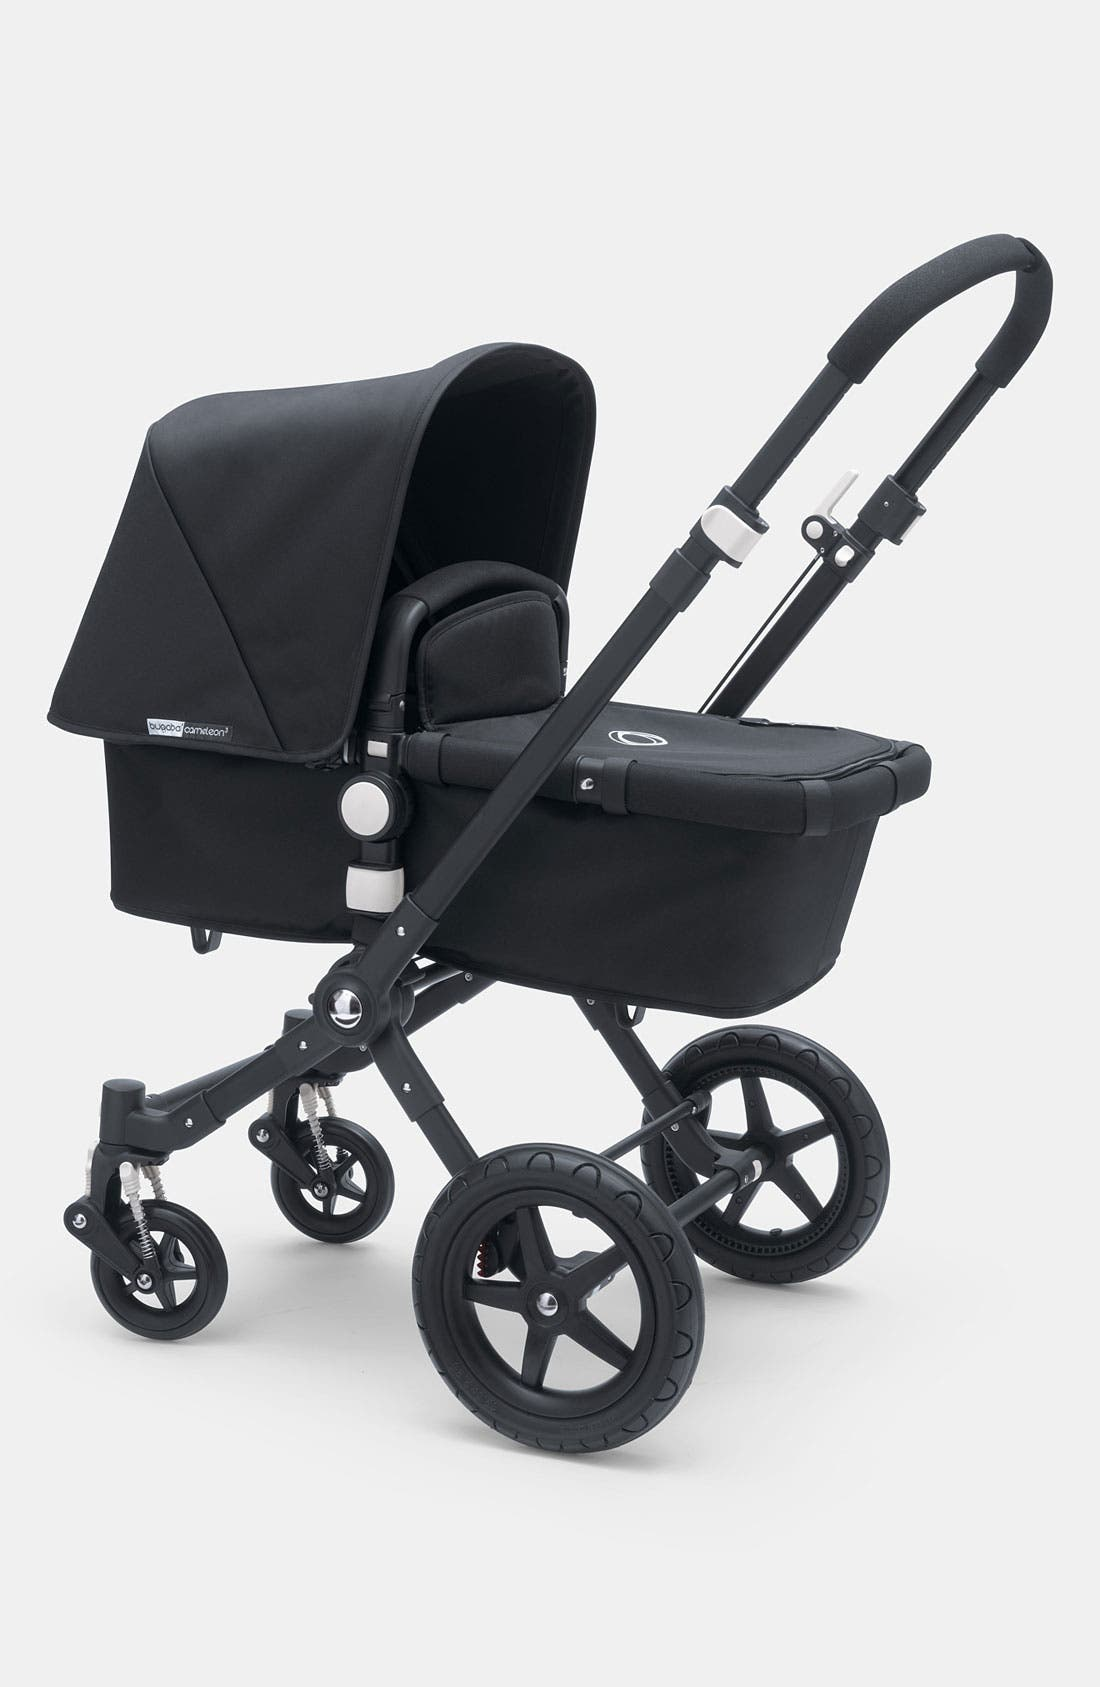 Alternate Image 3  - Bugaboo 'Cameleon³' Stroller - All Black Frame with Fabric Set (Special Edition)